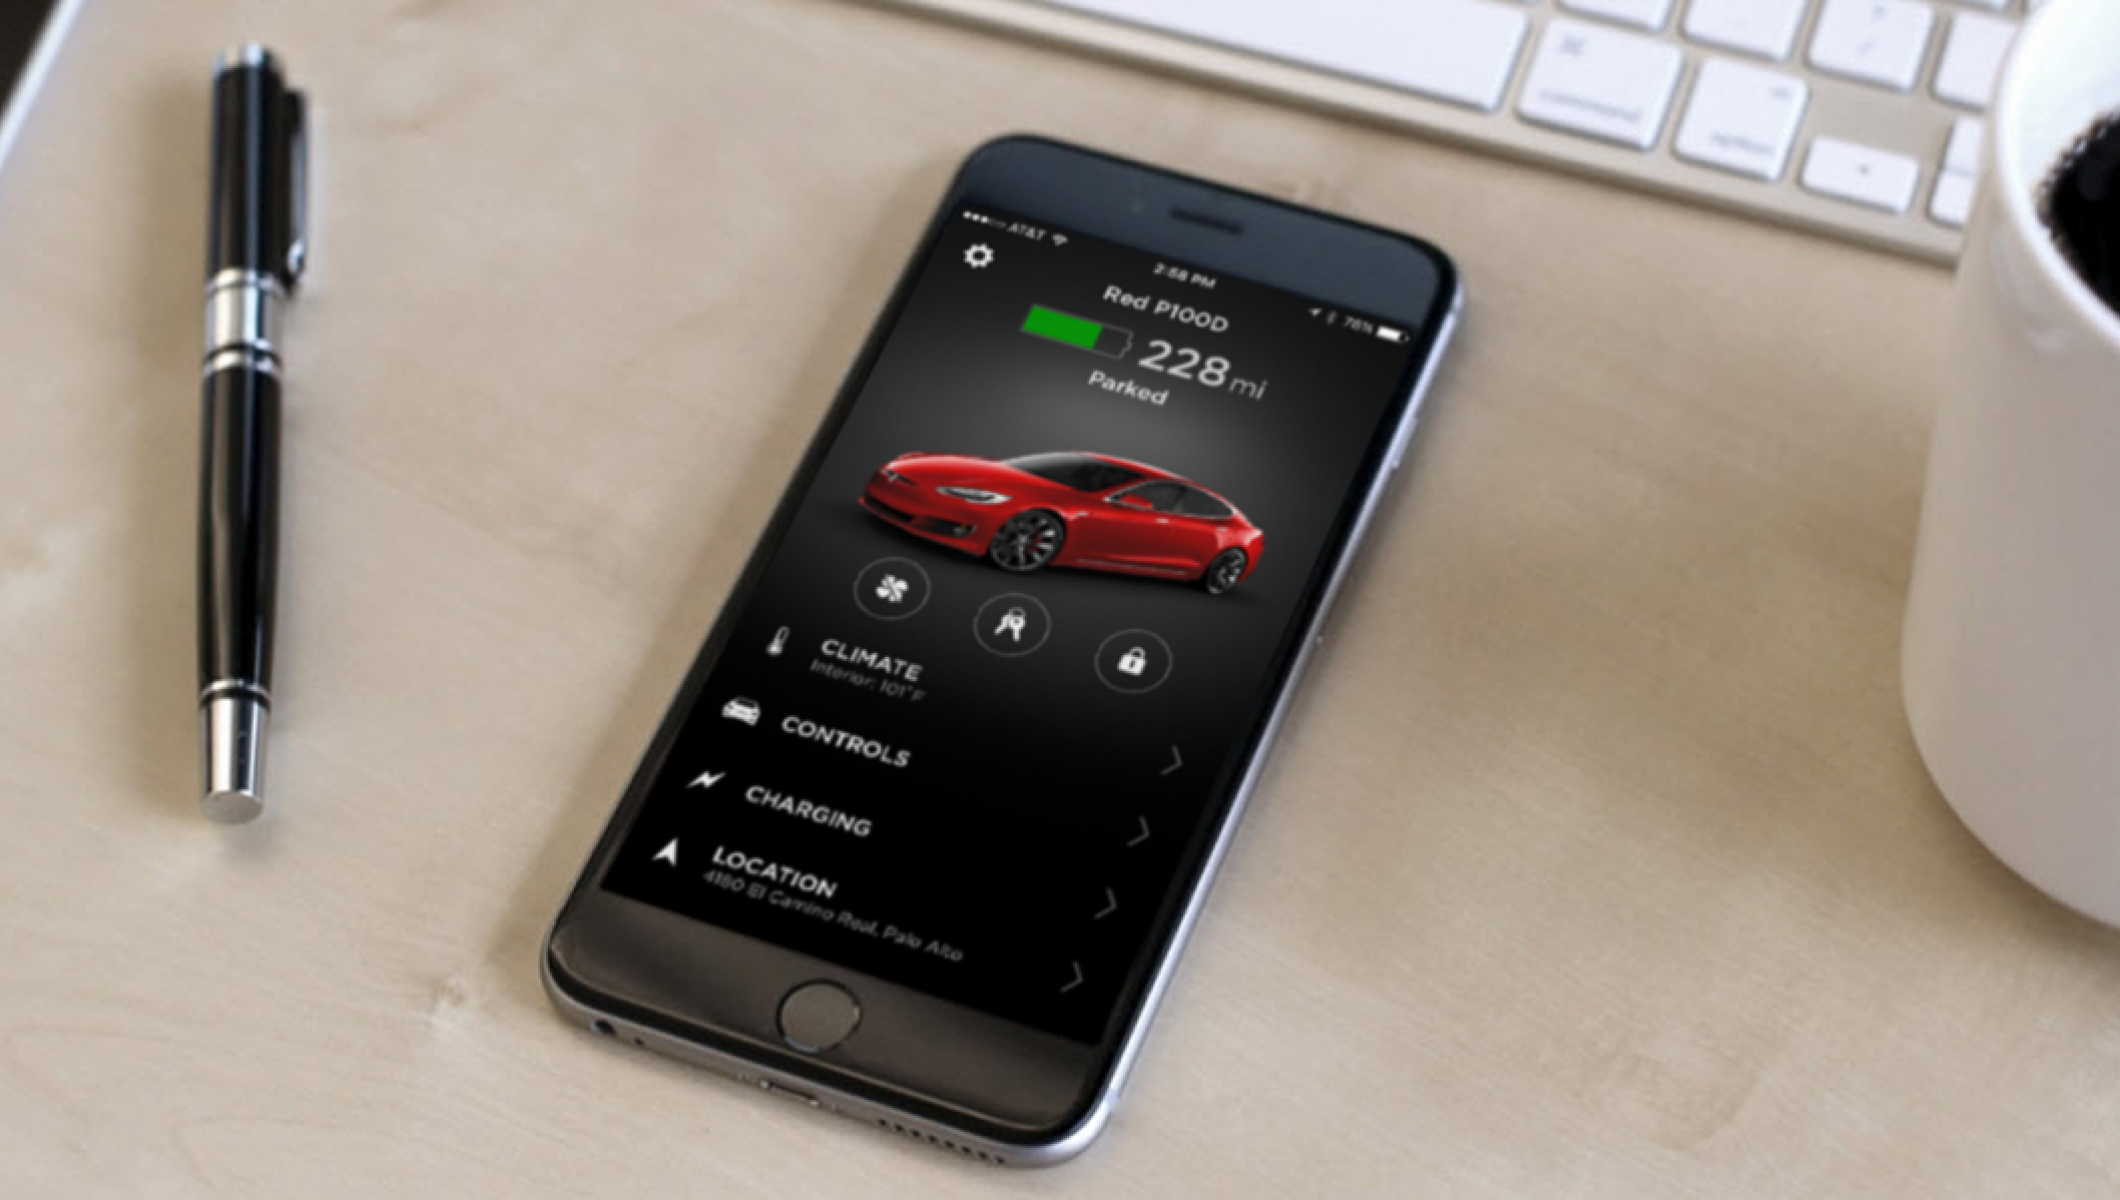 This app will connect car owners to a trusted mechanic